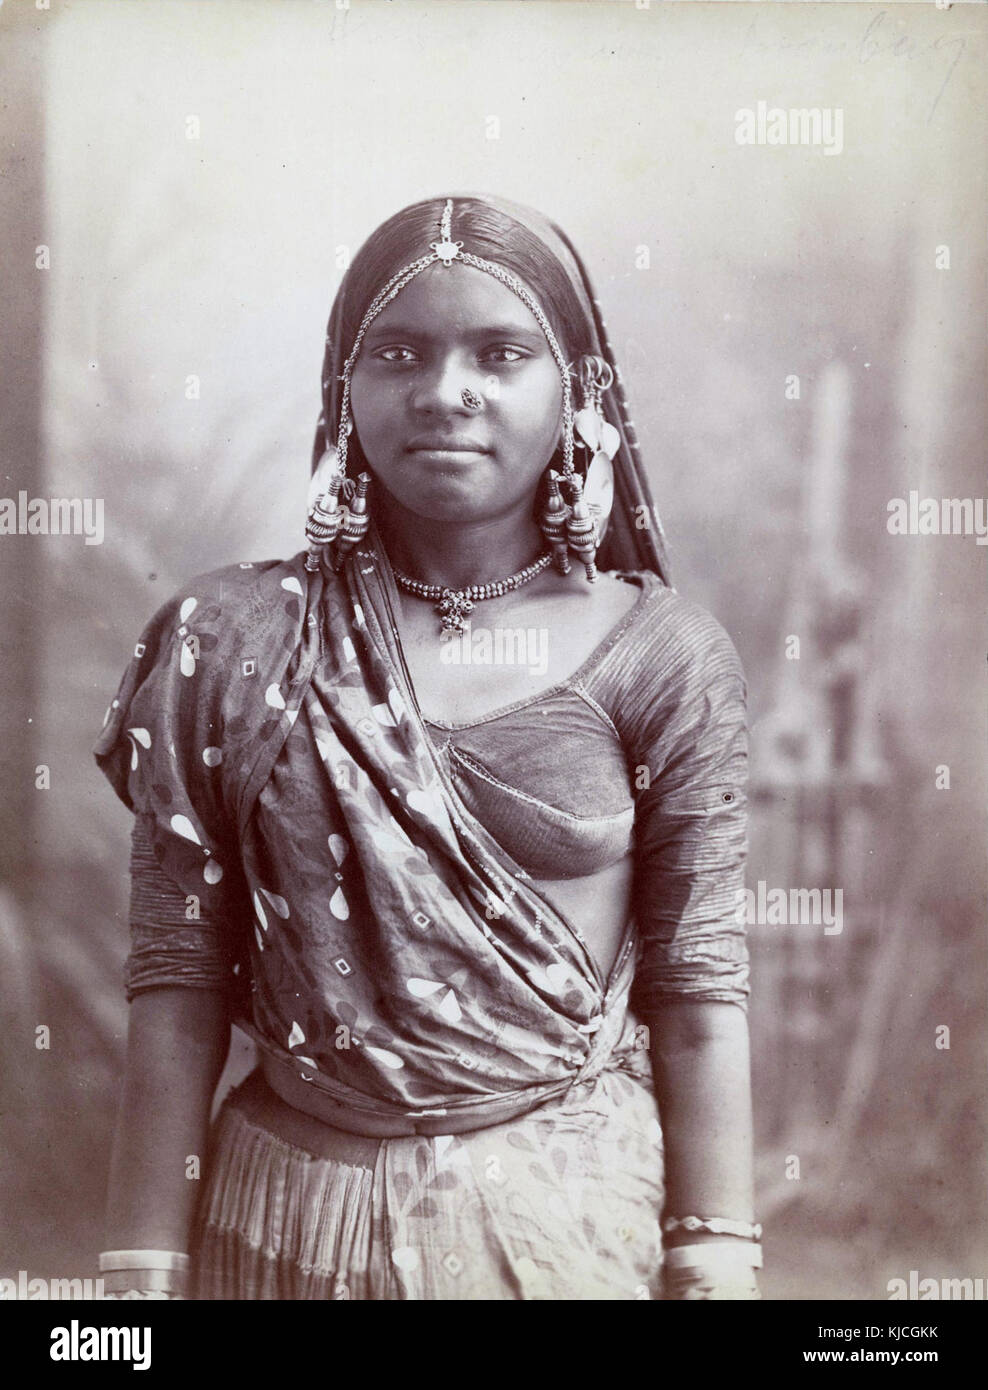 A young Indian woman in Bombay - Stock Image